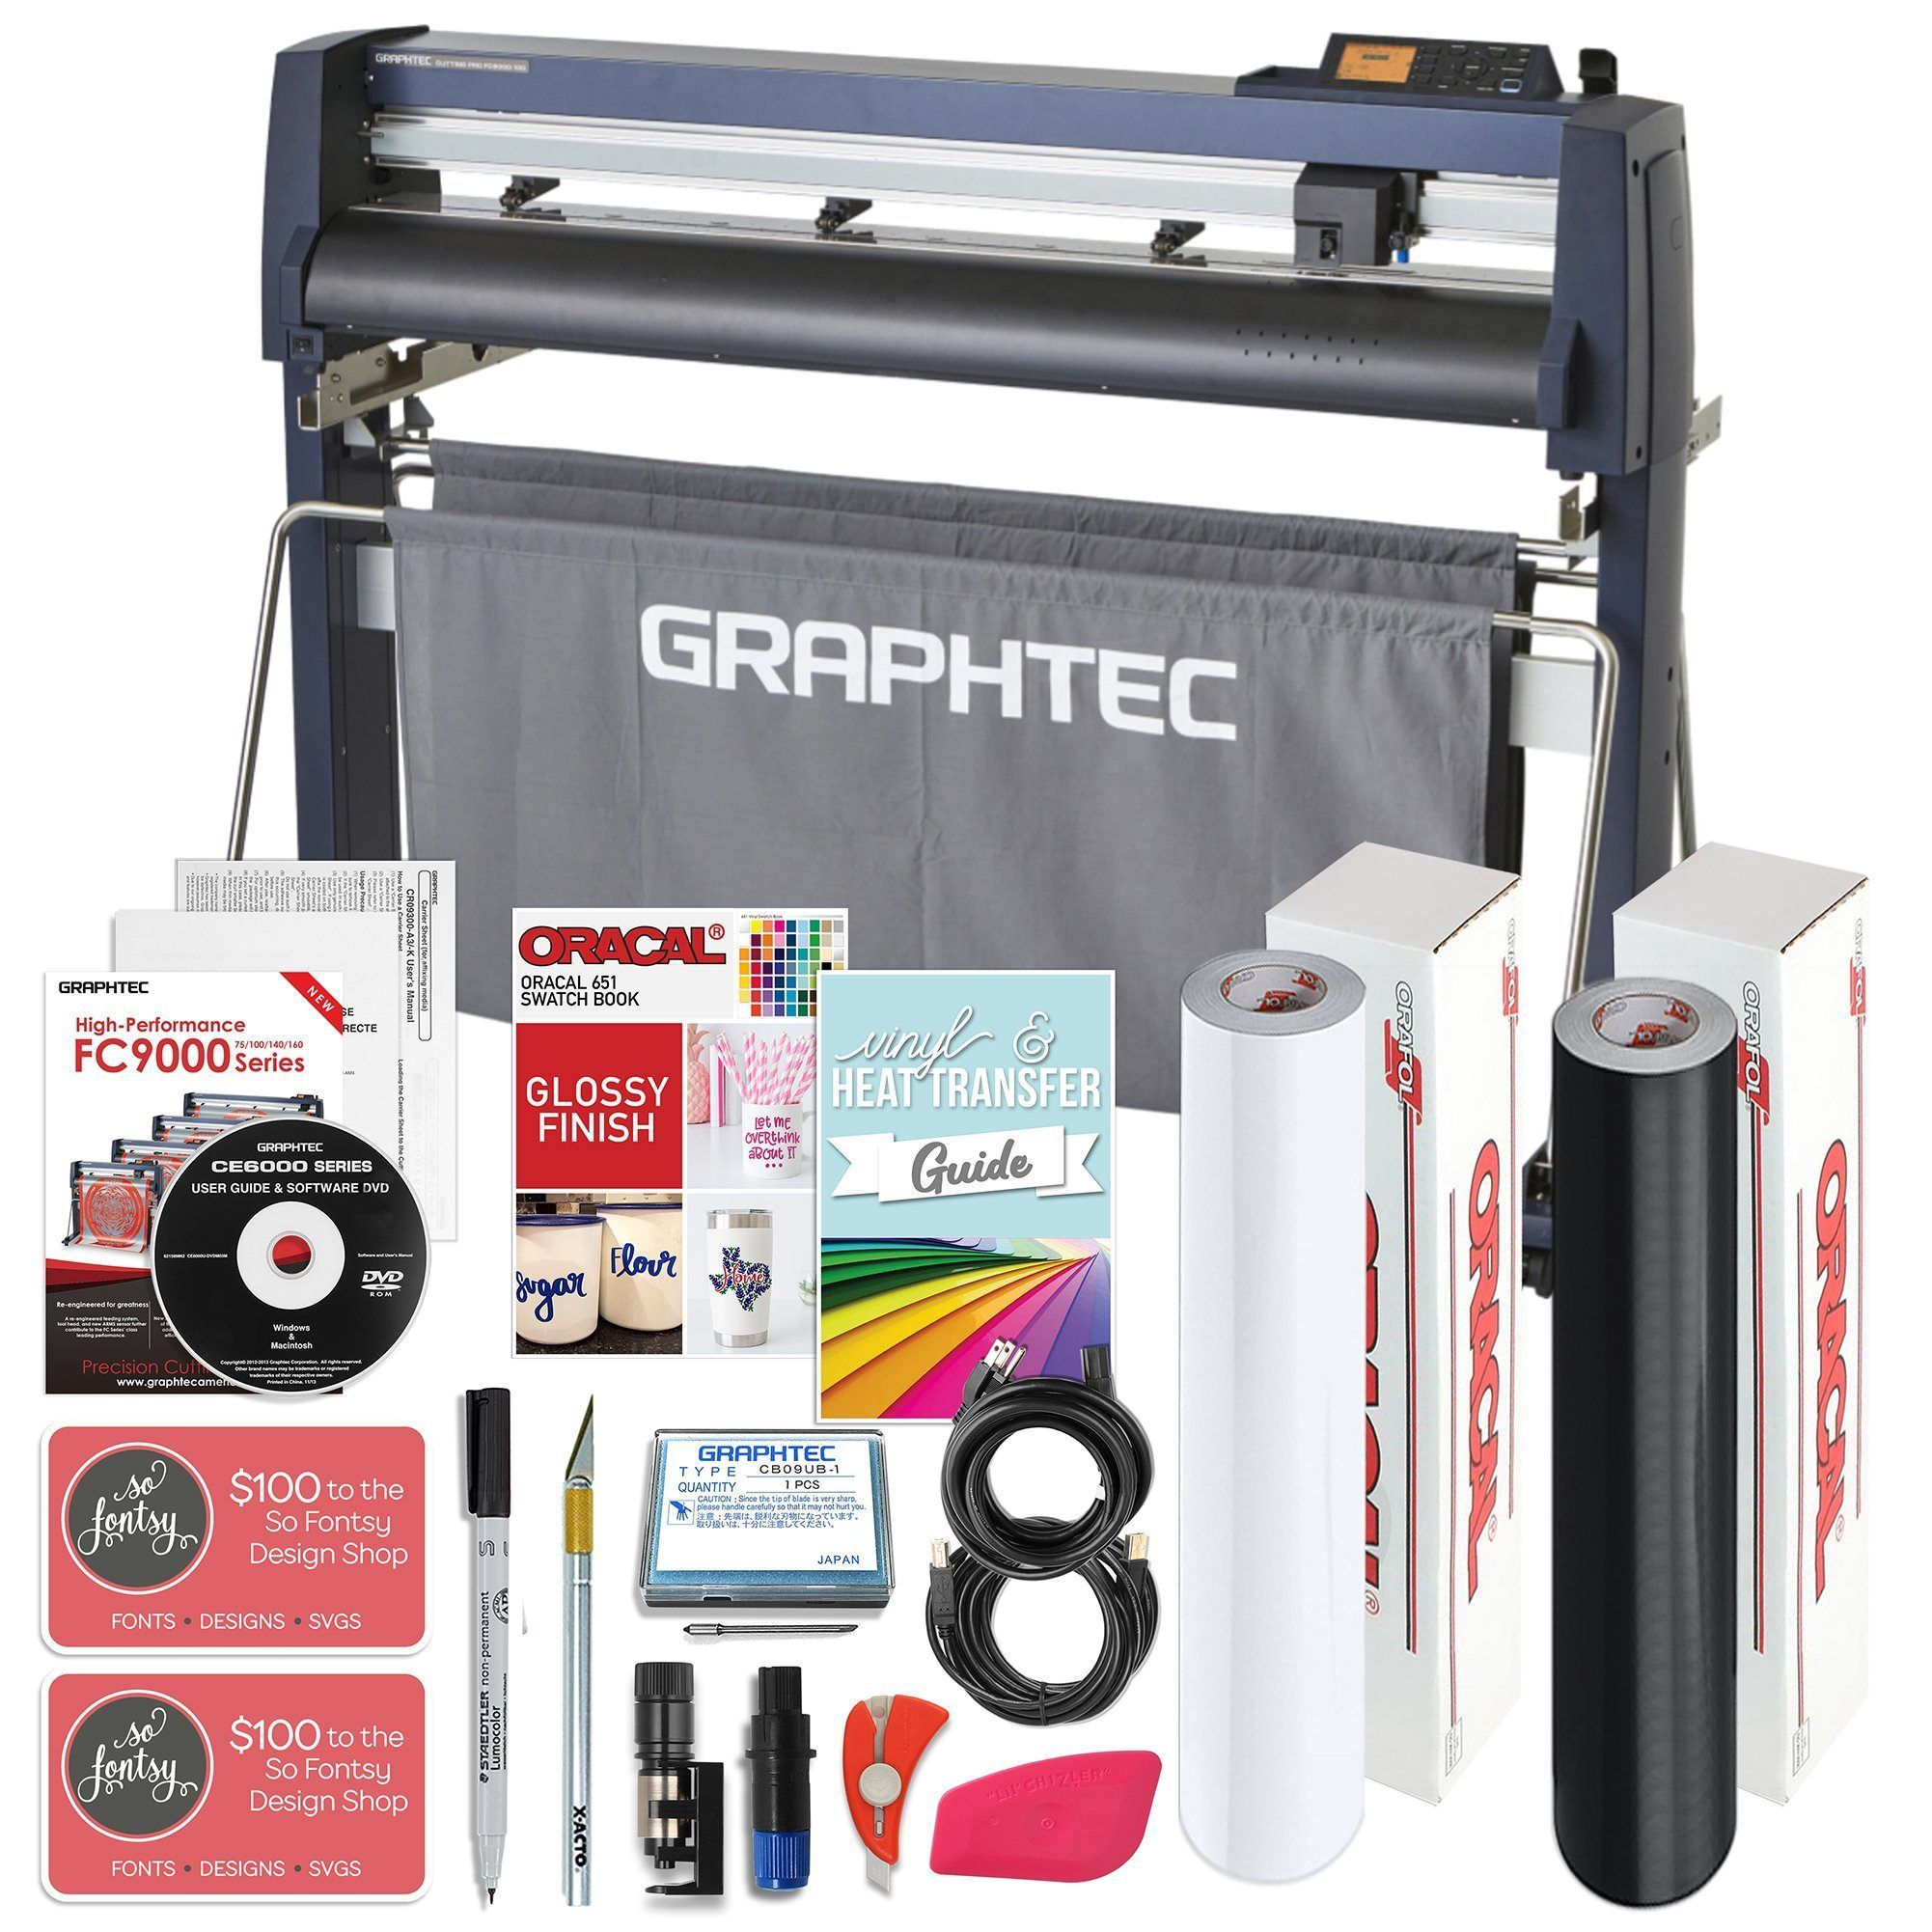 Pin On Graphtec Vinyl Cutters